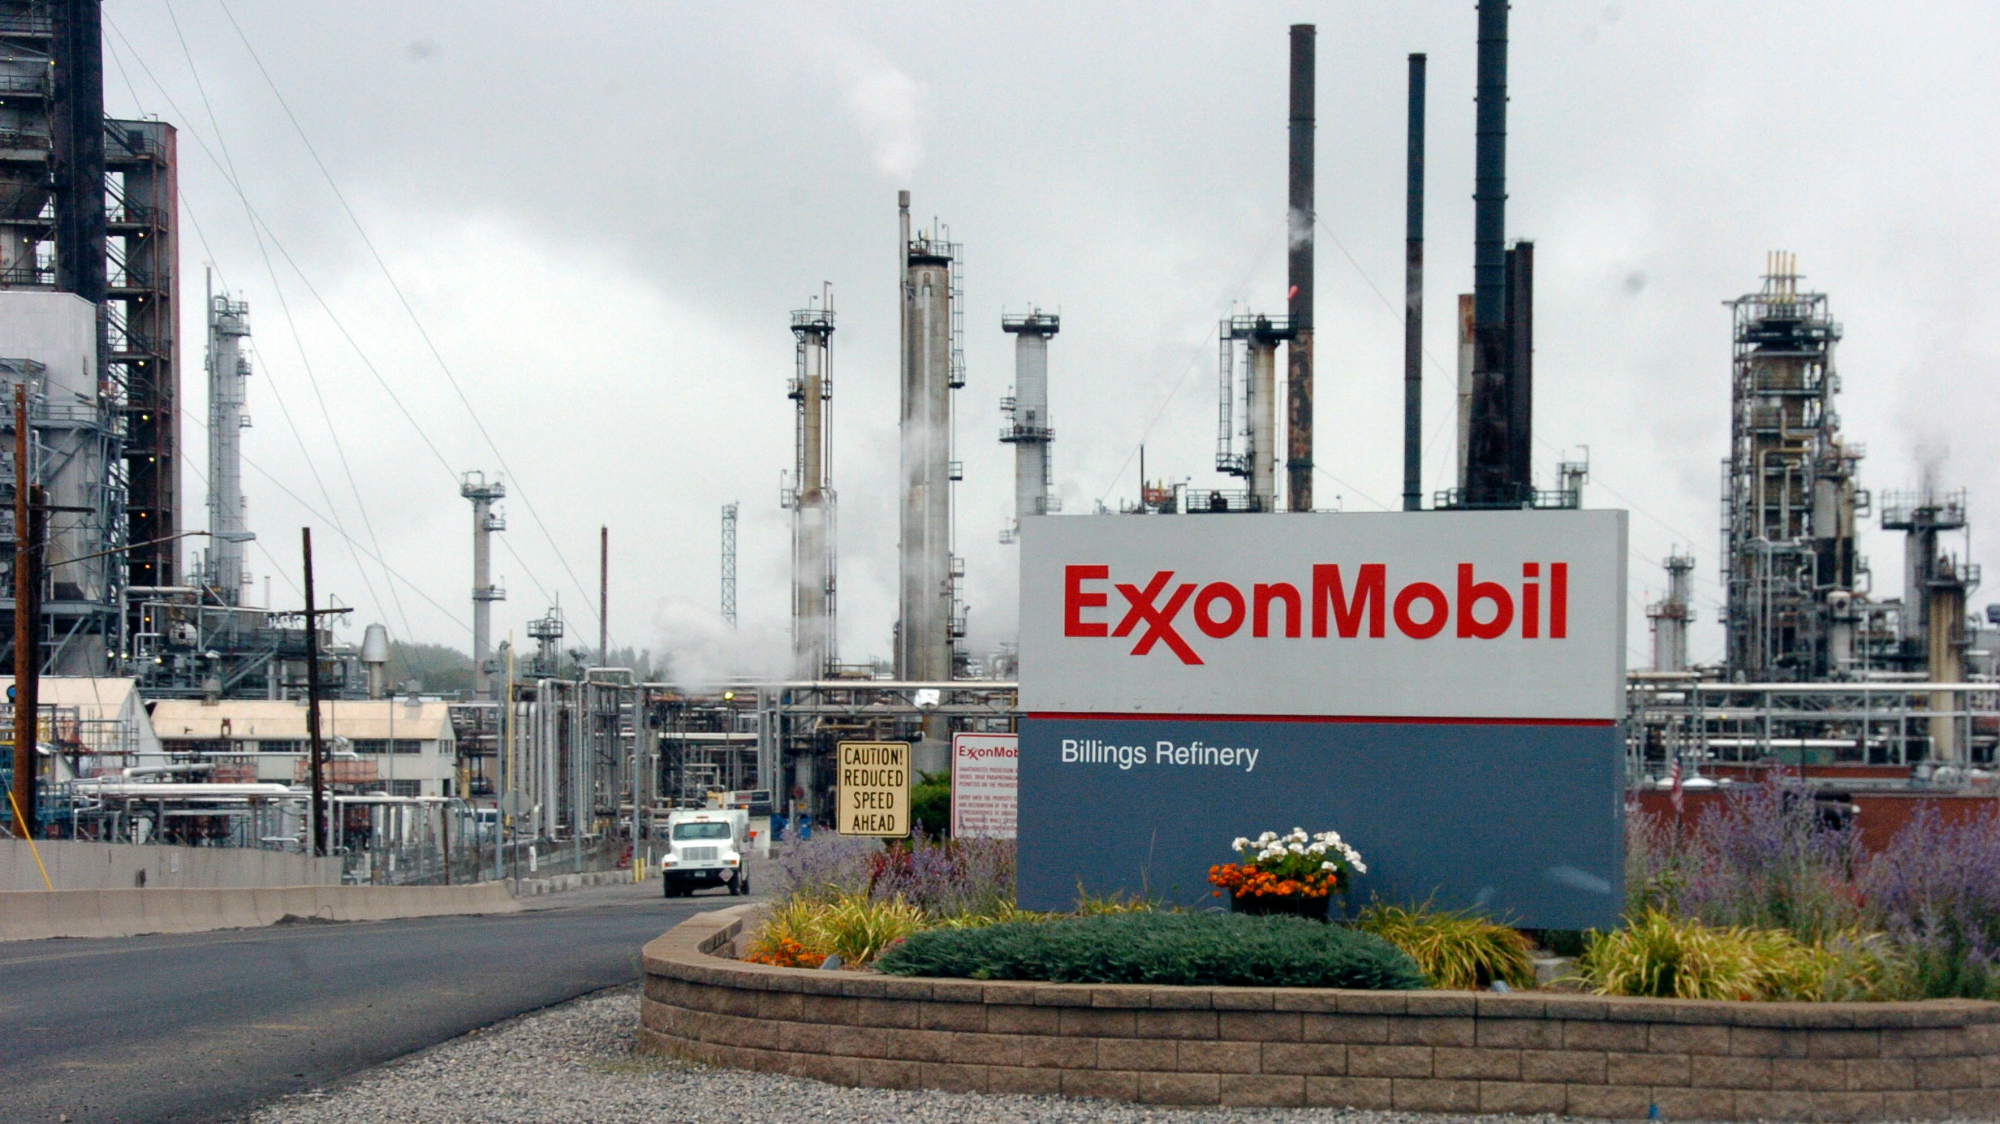 ExxonMobil climate woes mount as study reveals it has 'misled' the public